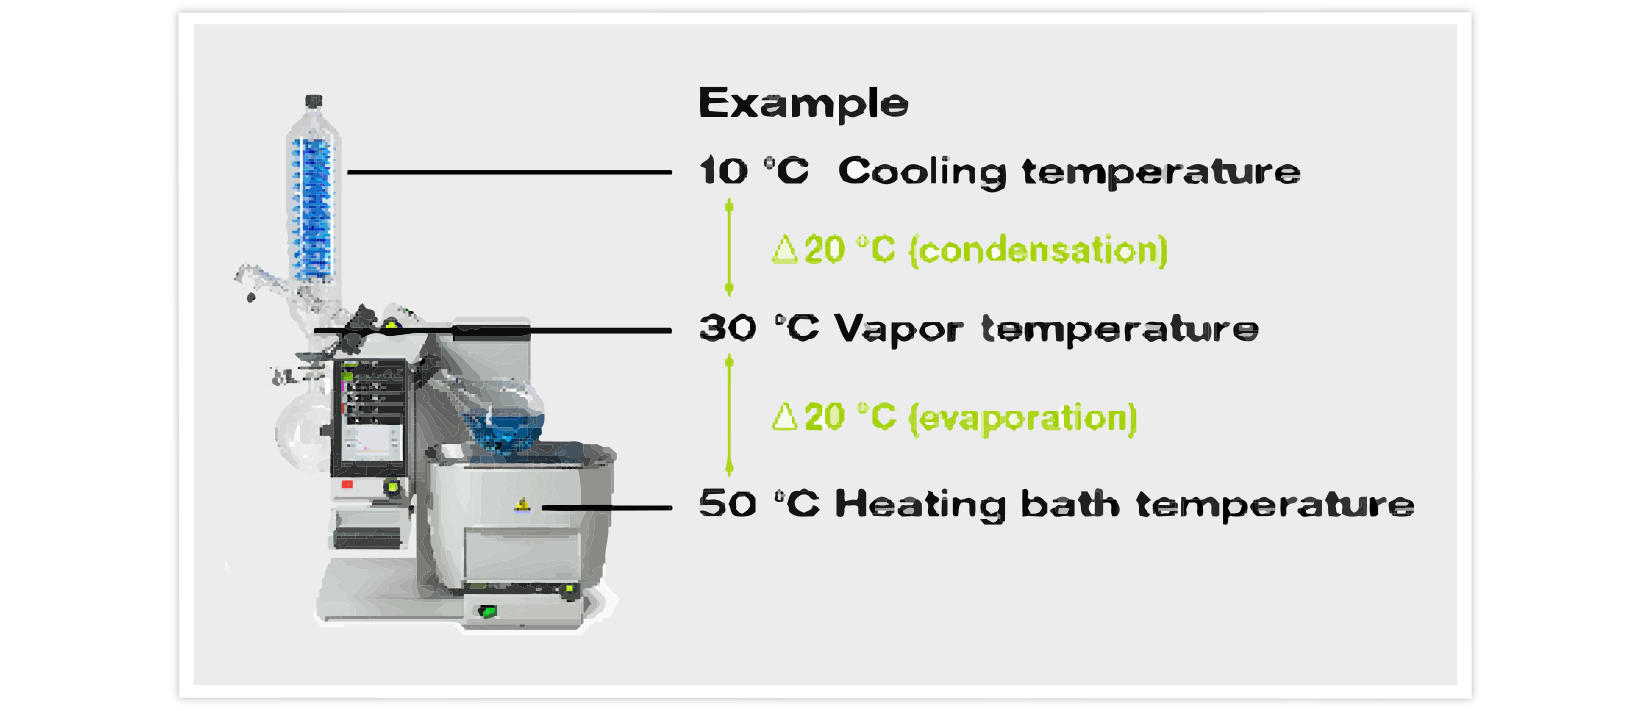 delta 20 rule, rotary evaporation, laboratory evaporation, heating bath temperature, vapor temperature, cooling temperature